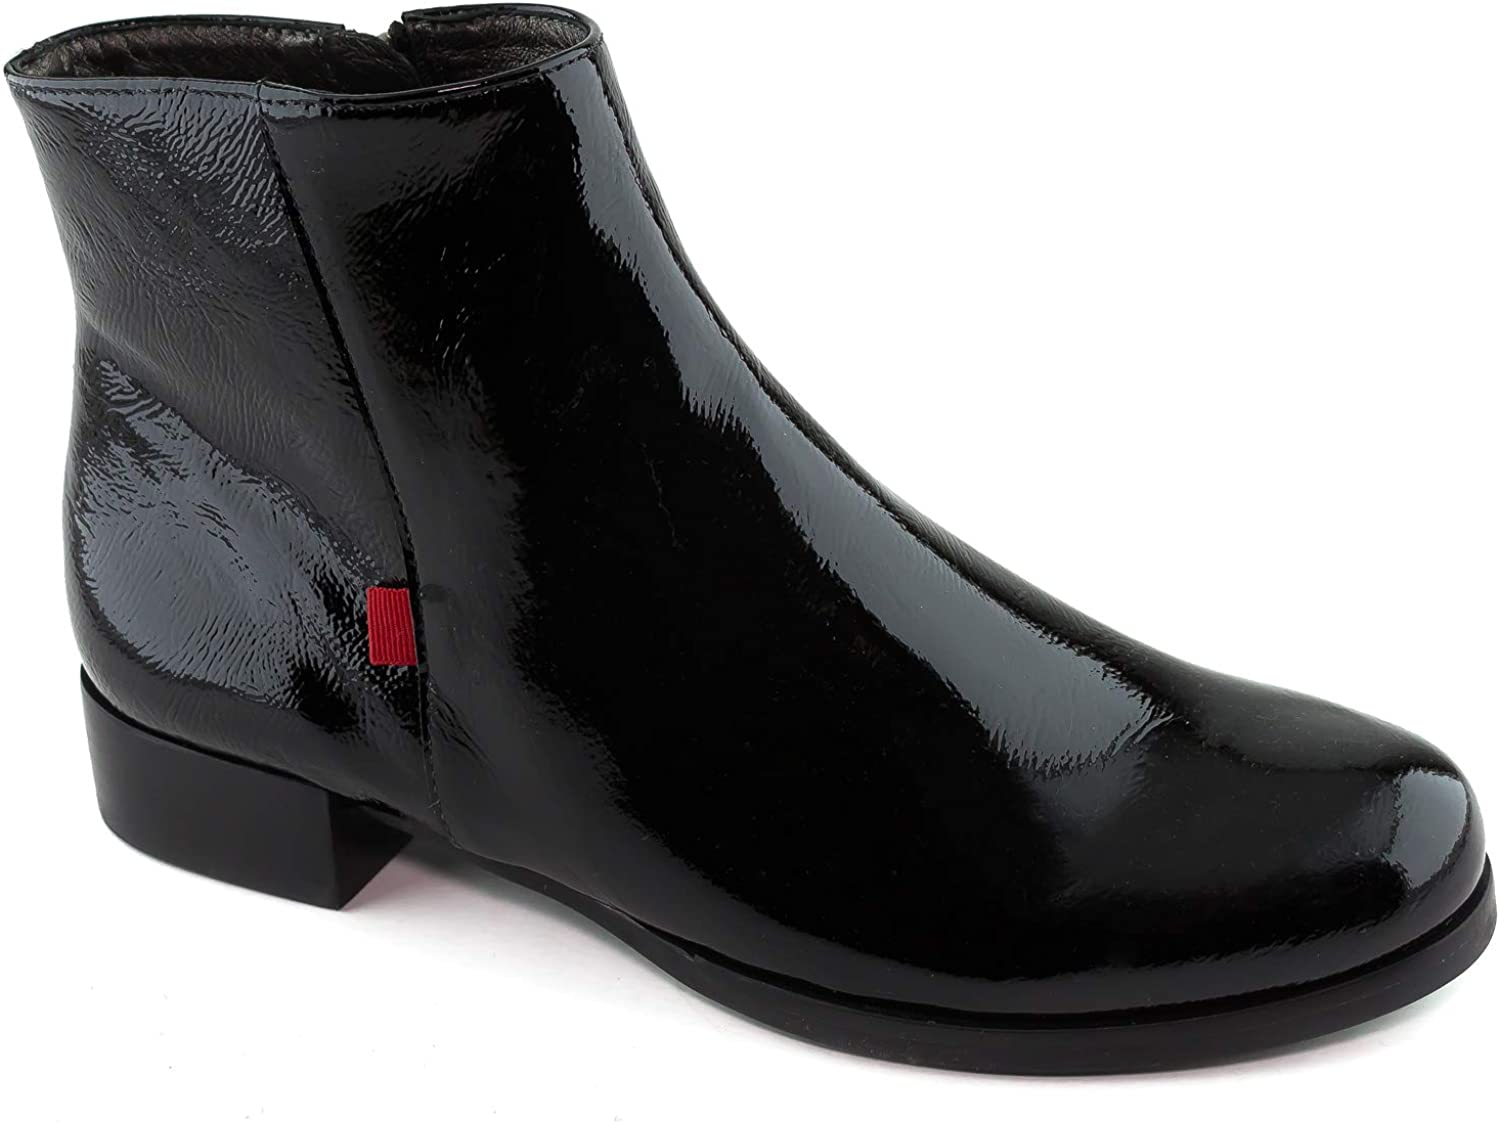 MARC JOSEPH NEW YORK Womens Womens Genuine Leather Made in Brazil Prince Street Bootie Ankle Boot